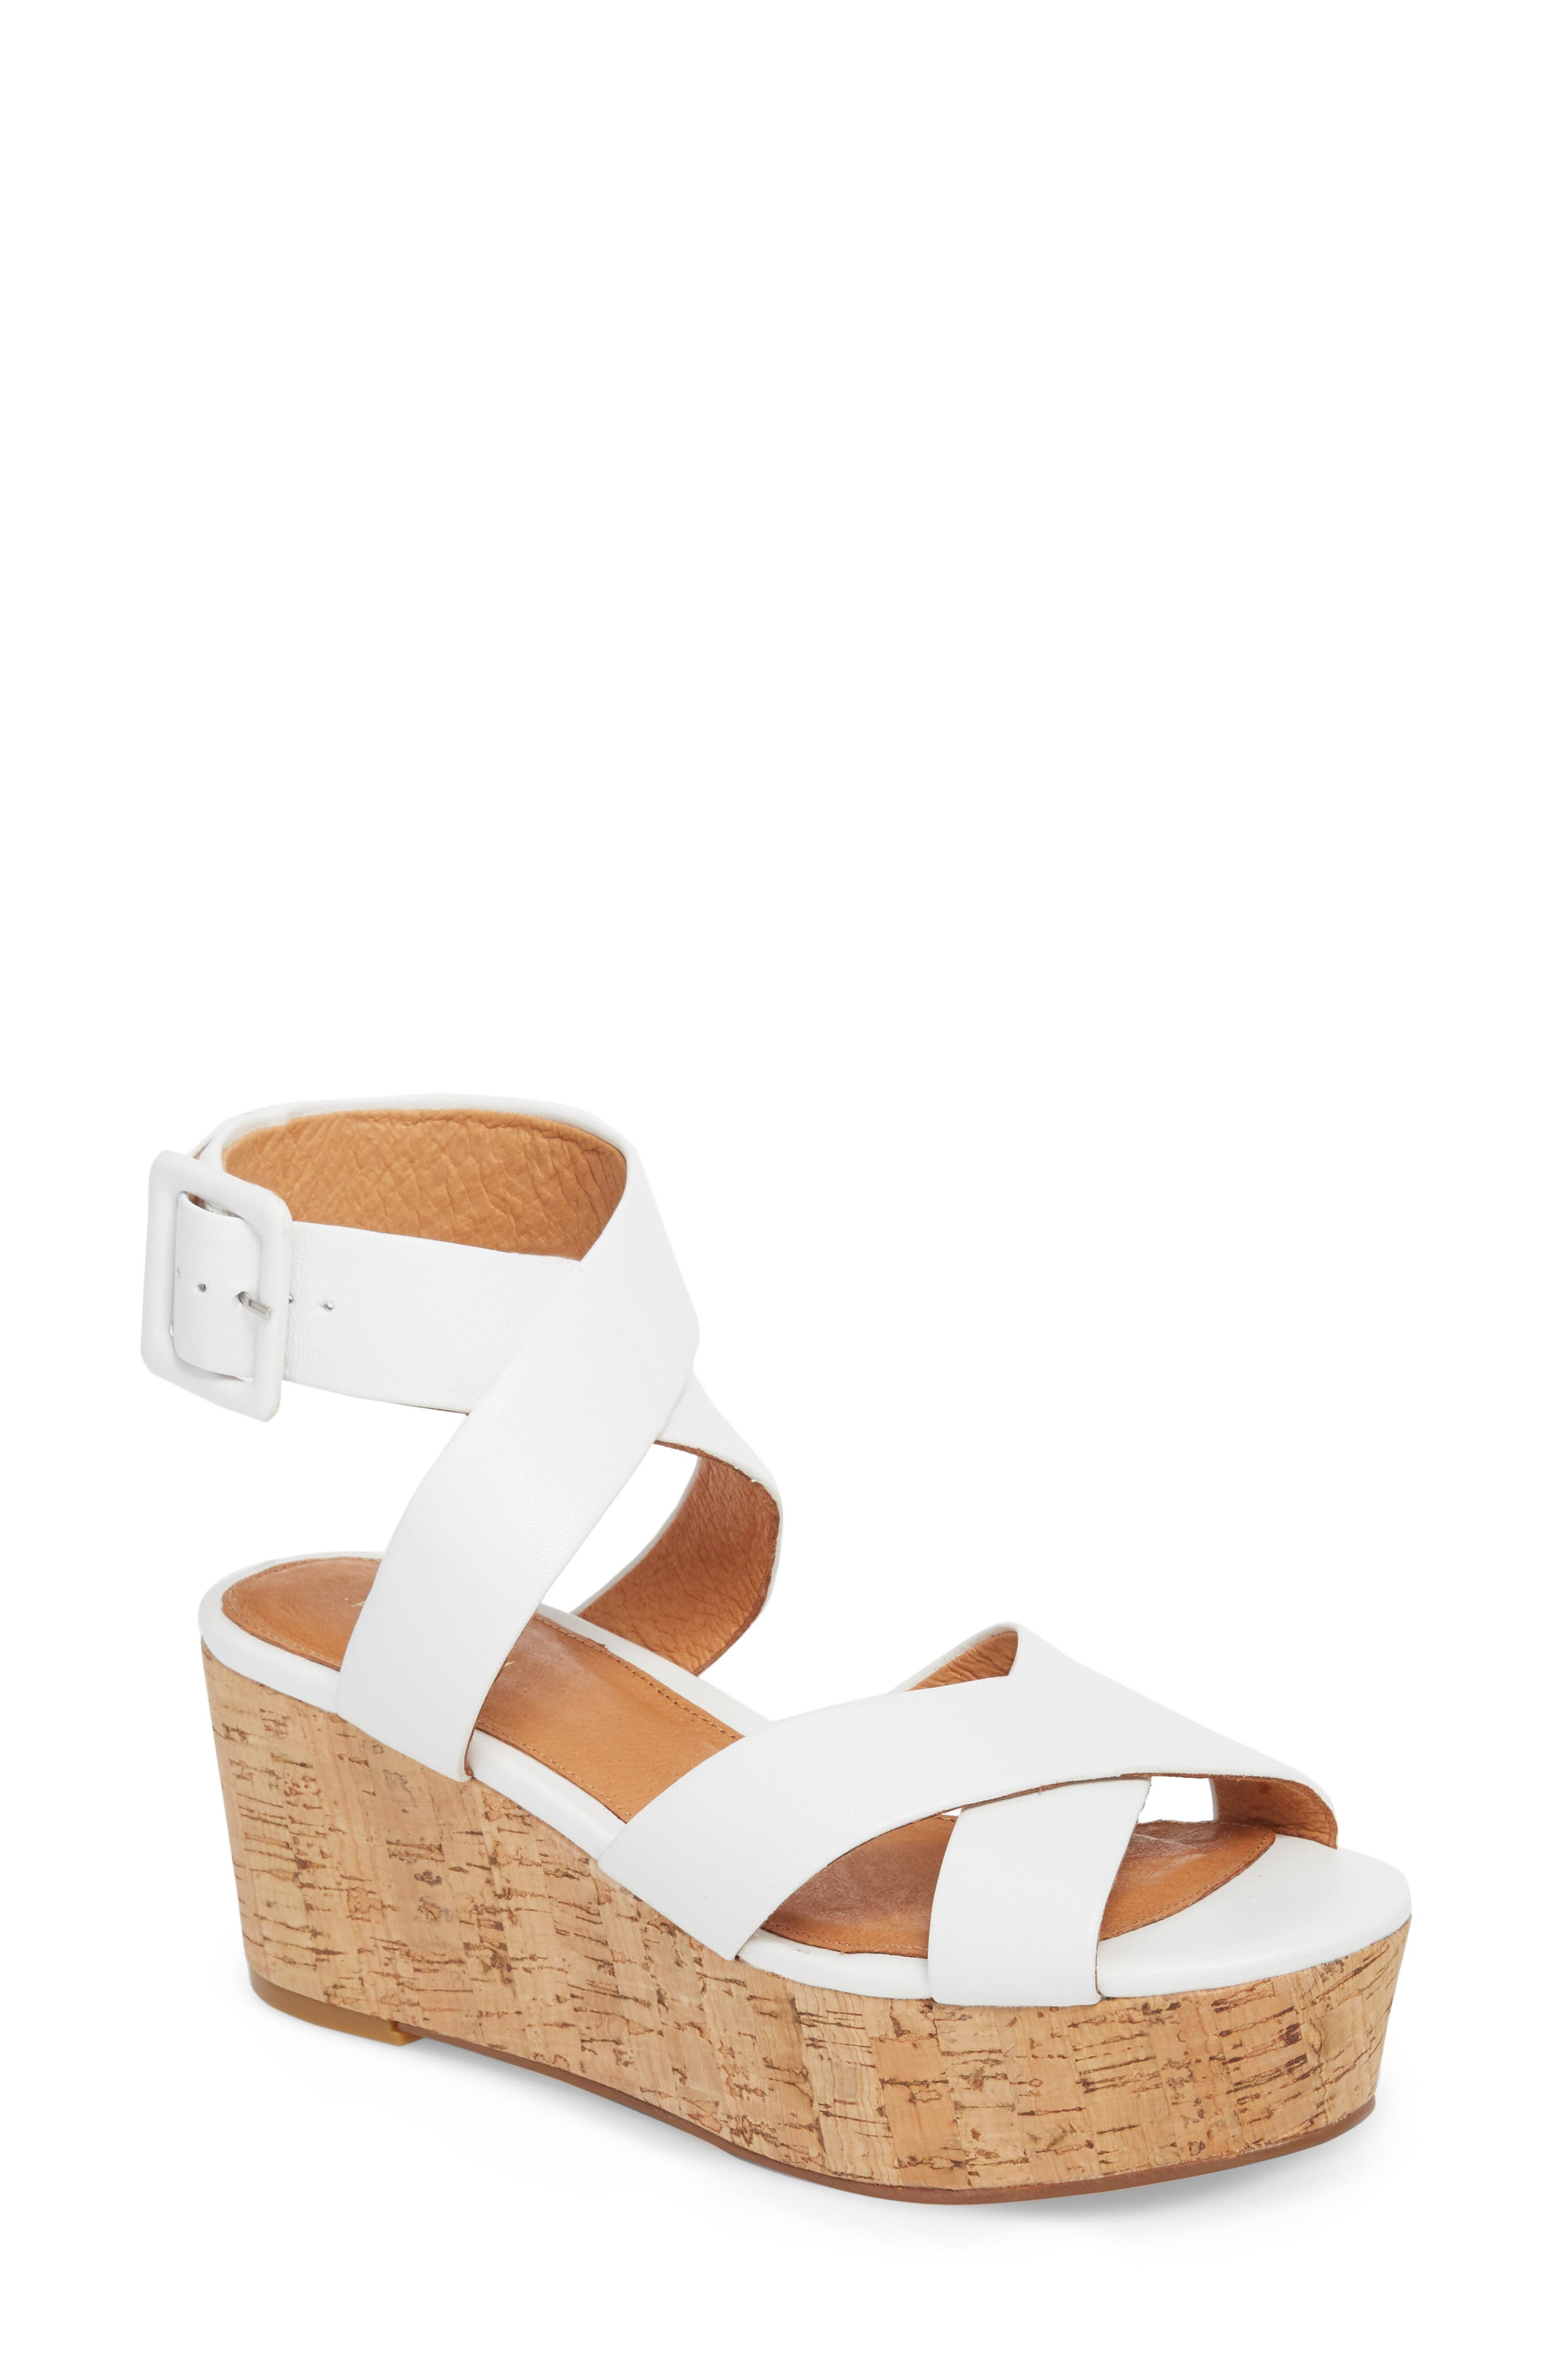 Evie Platform Wedge Sandal,                         Main,                         color, White Leather